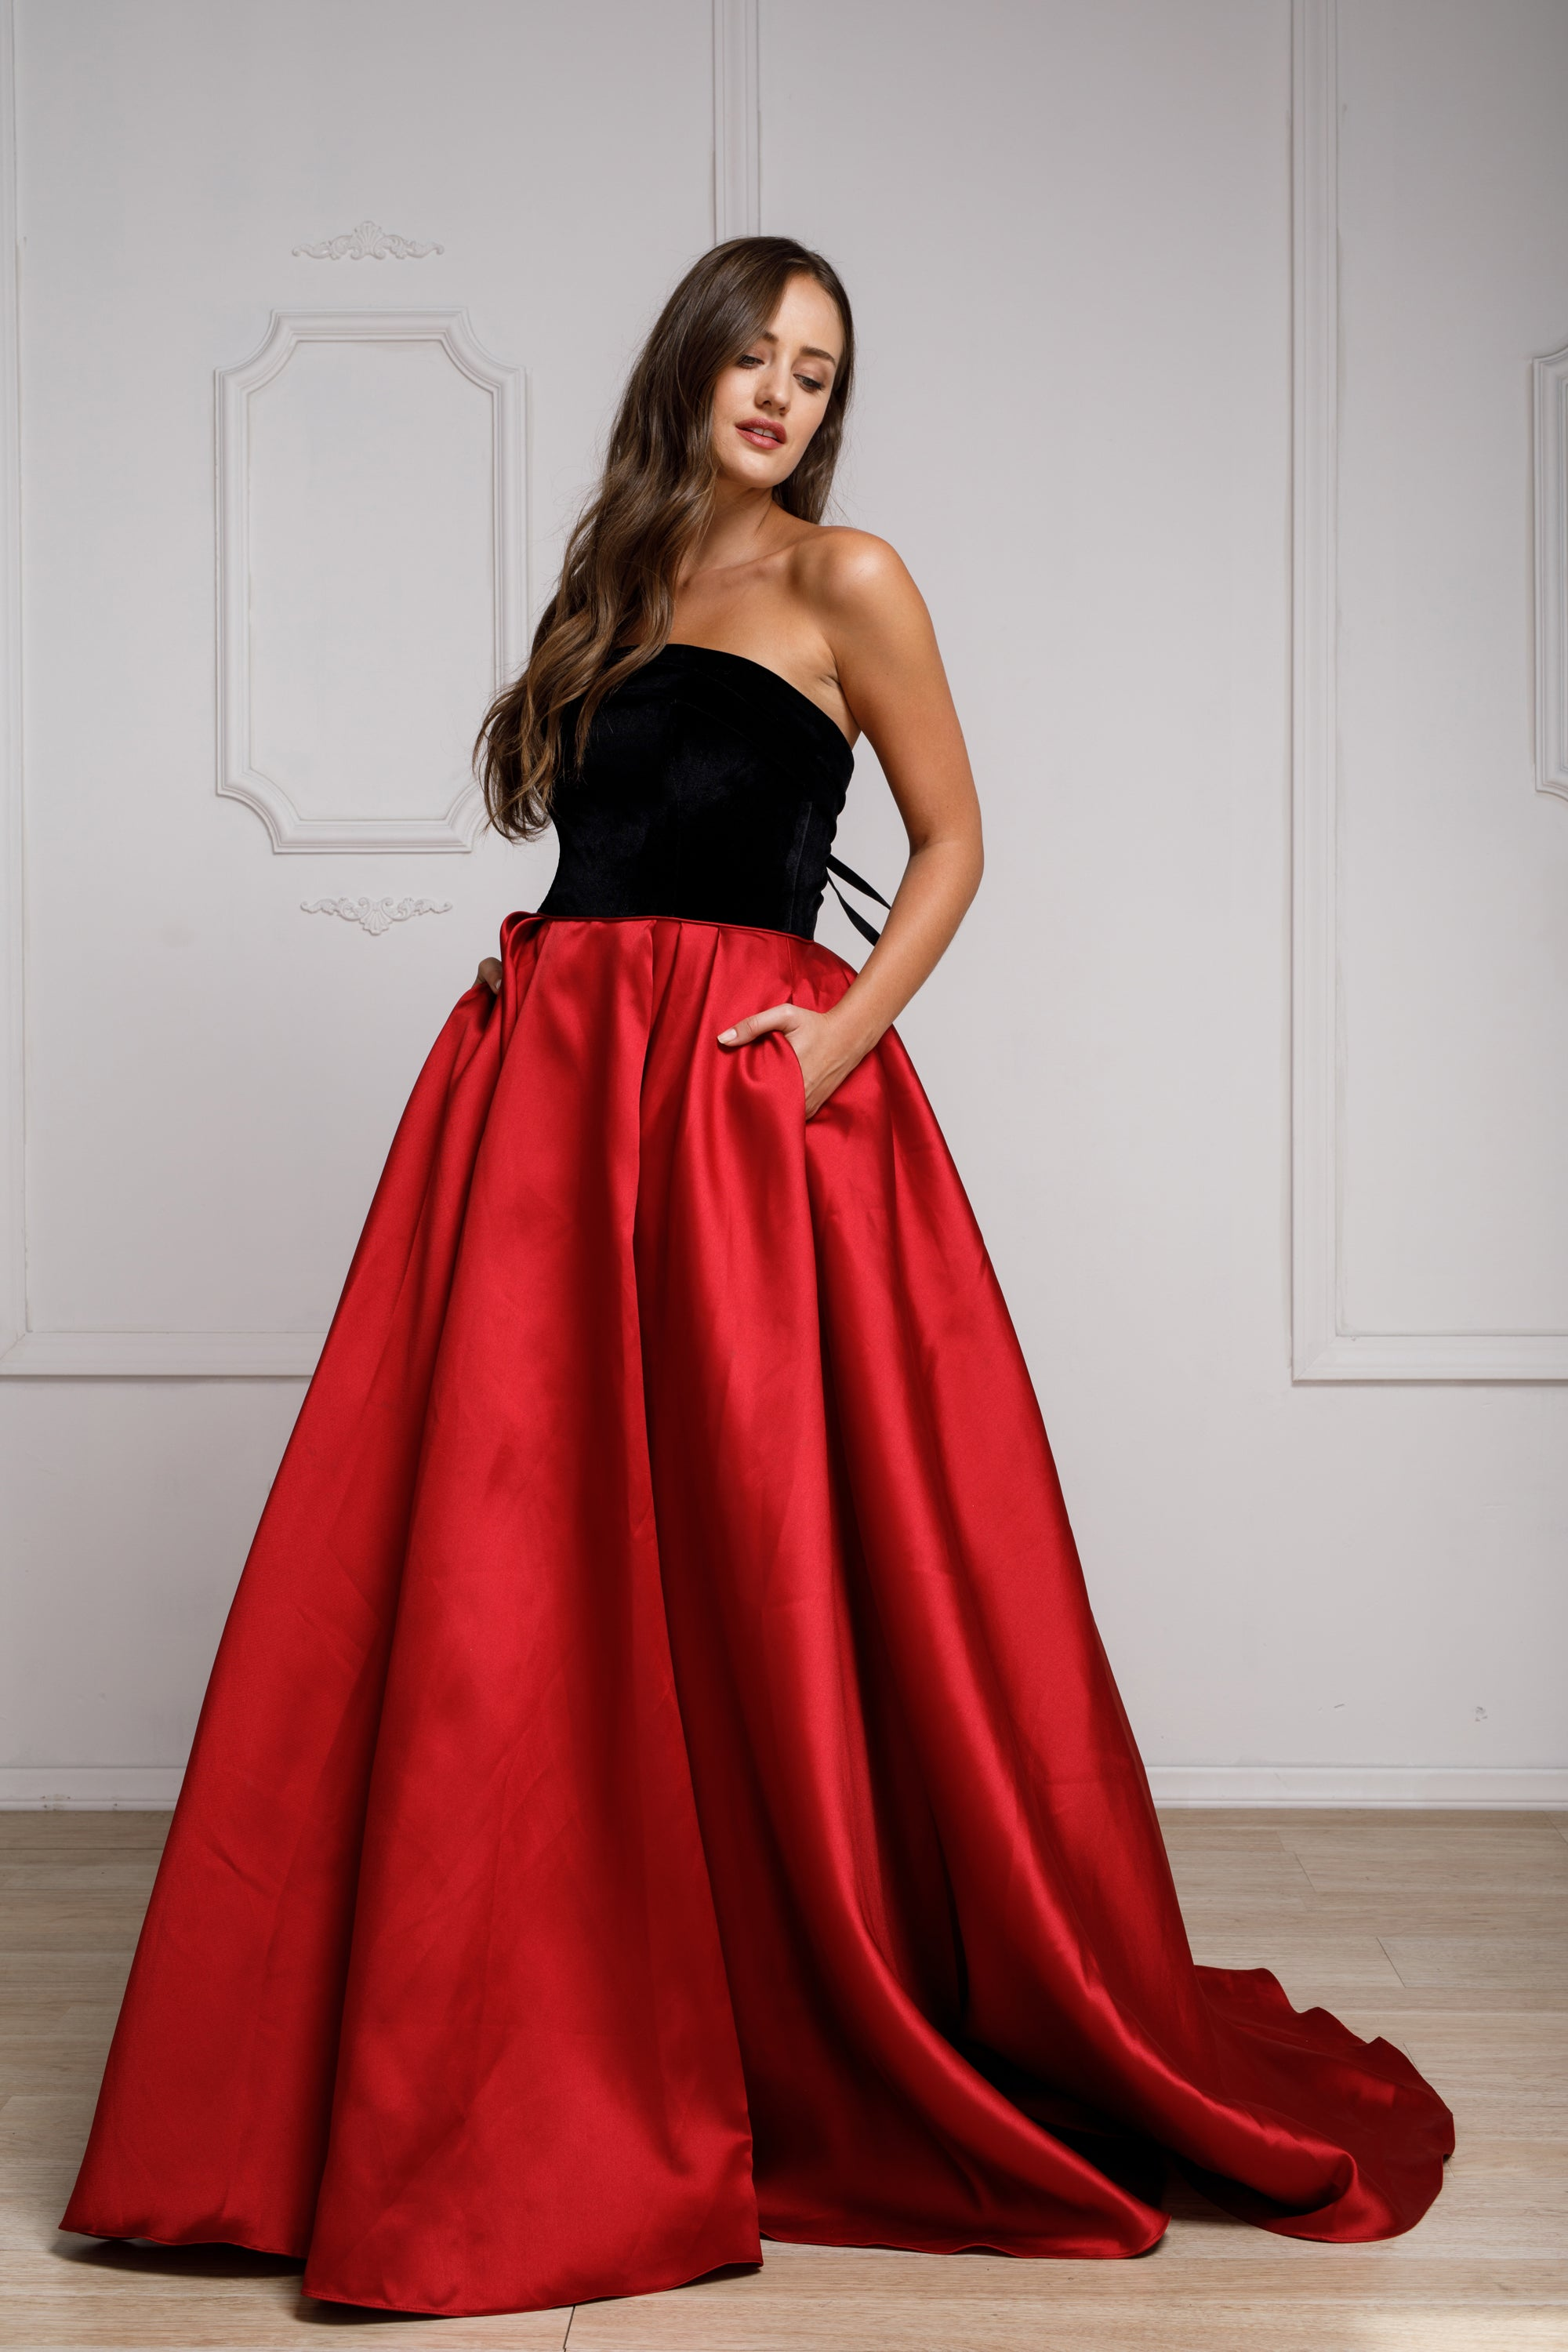 Main image of Off Shoulder Long Puffy Prom Dress